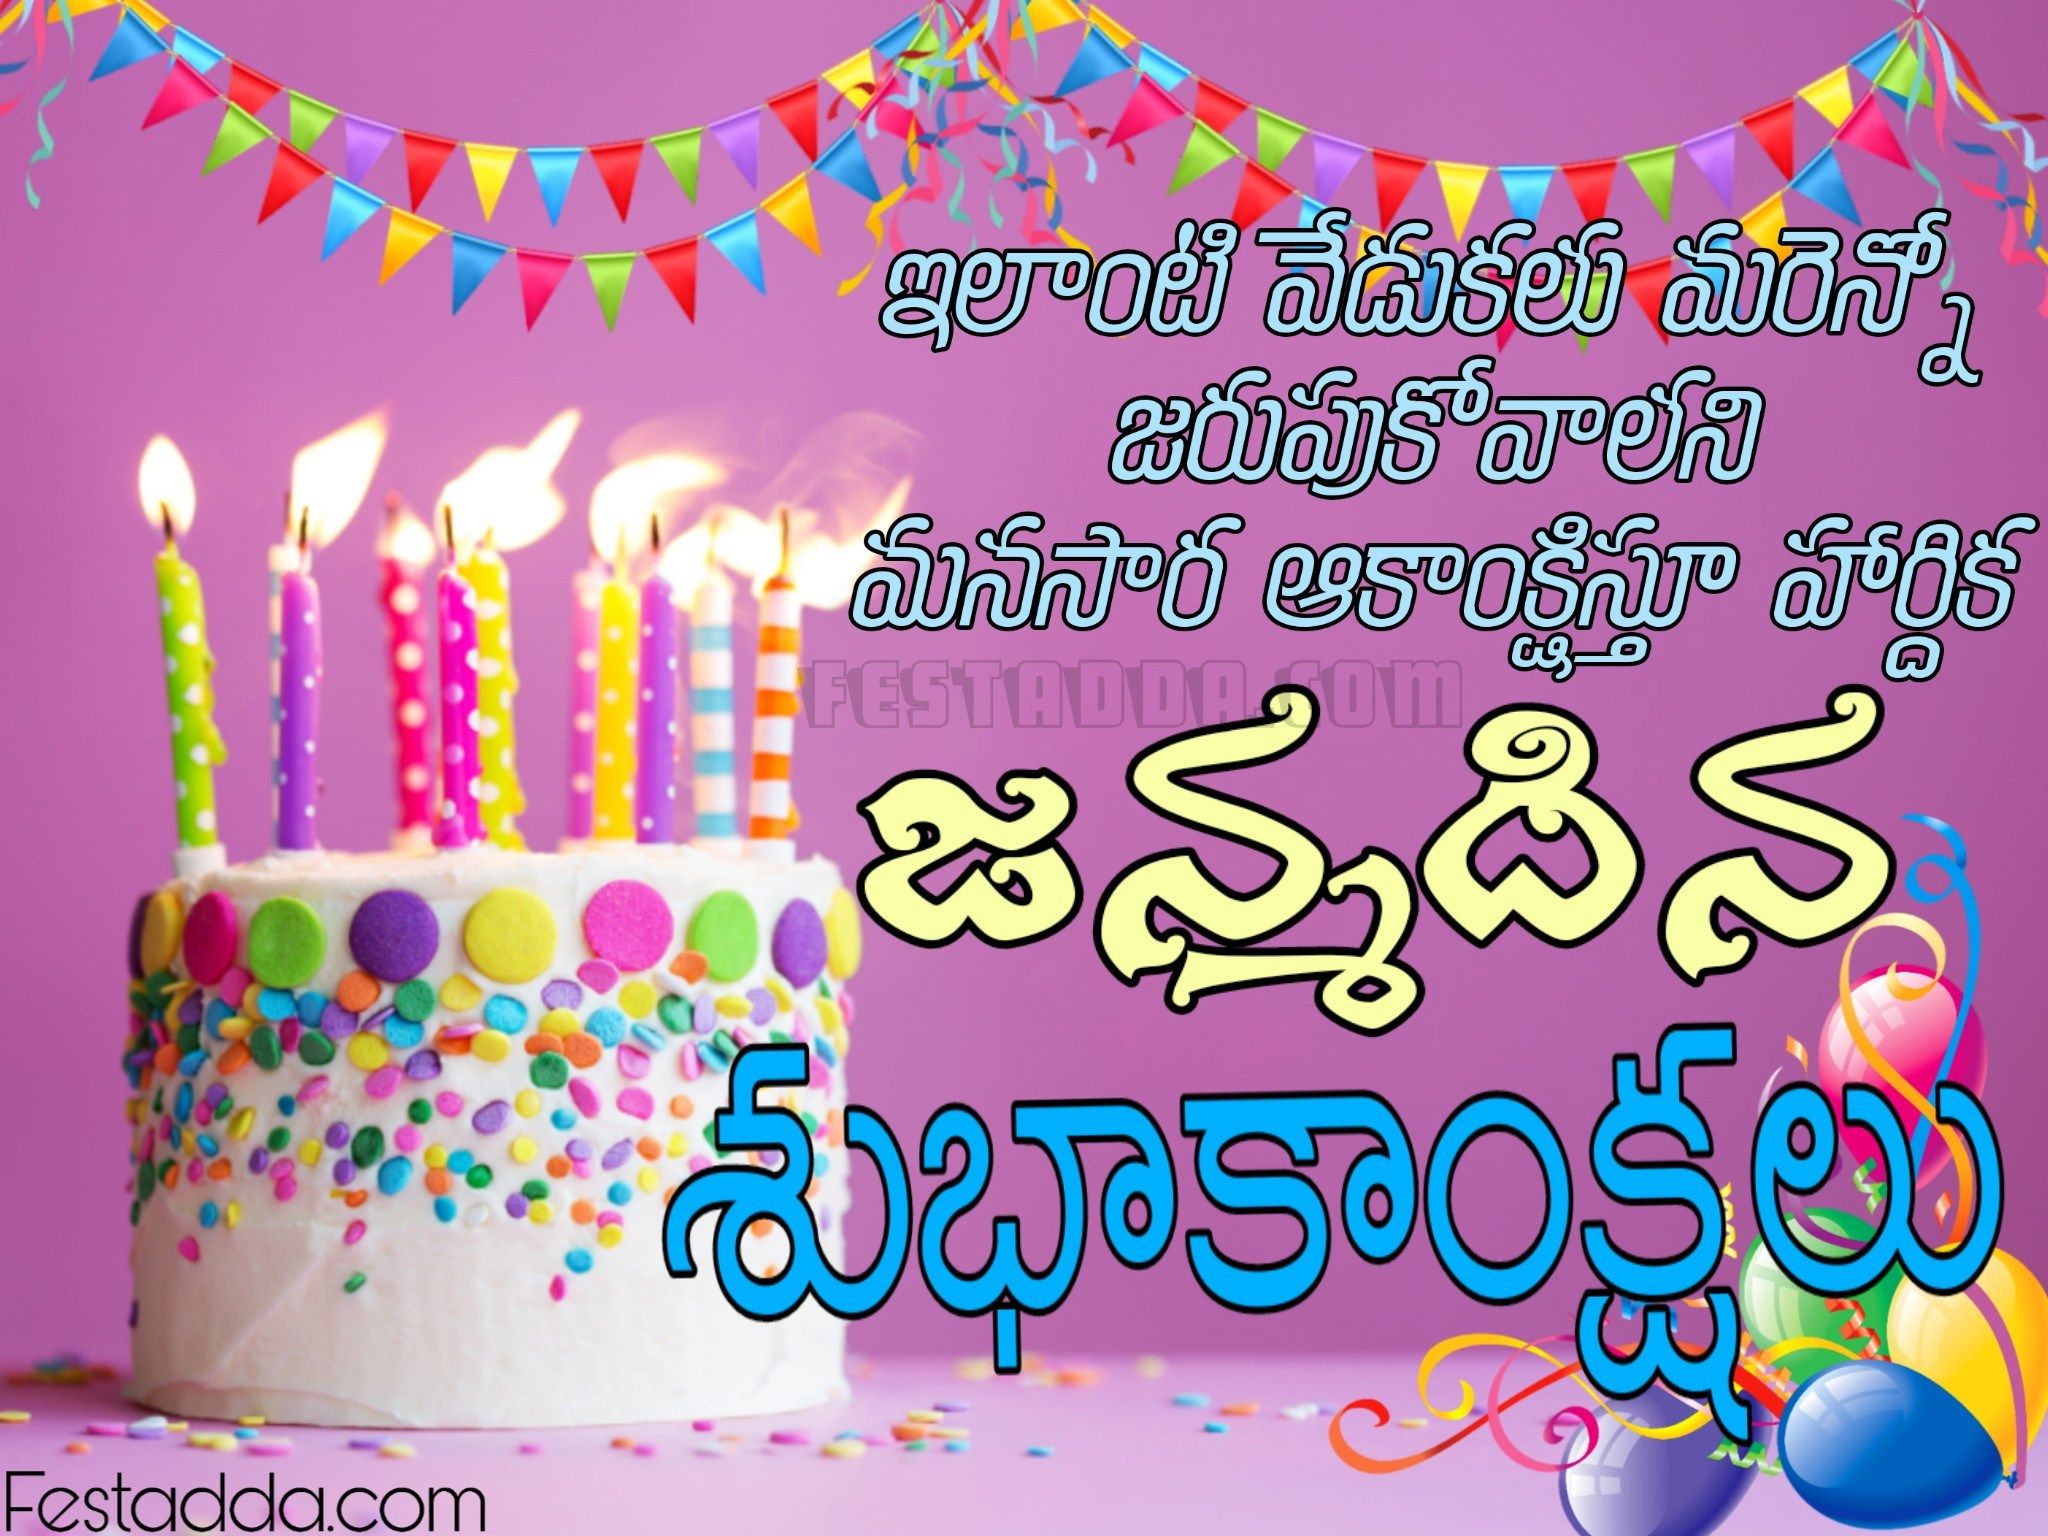 Remarkable Happy Birthday Wishes In Telugu With Name Beanos Marsaskala Funny Birthday Cards Online Inifofree Goldxyz